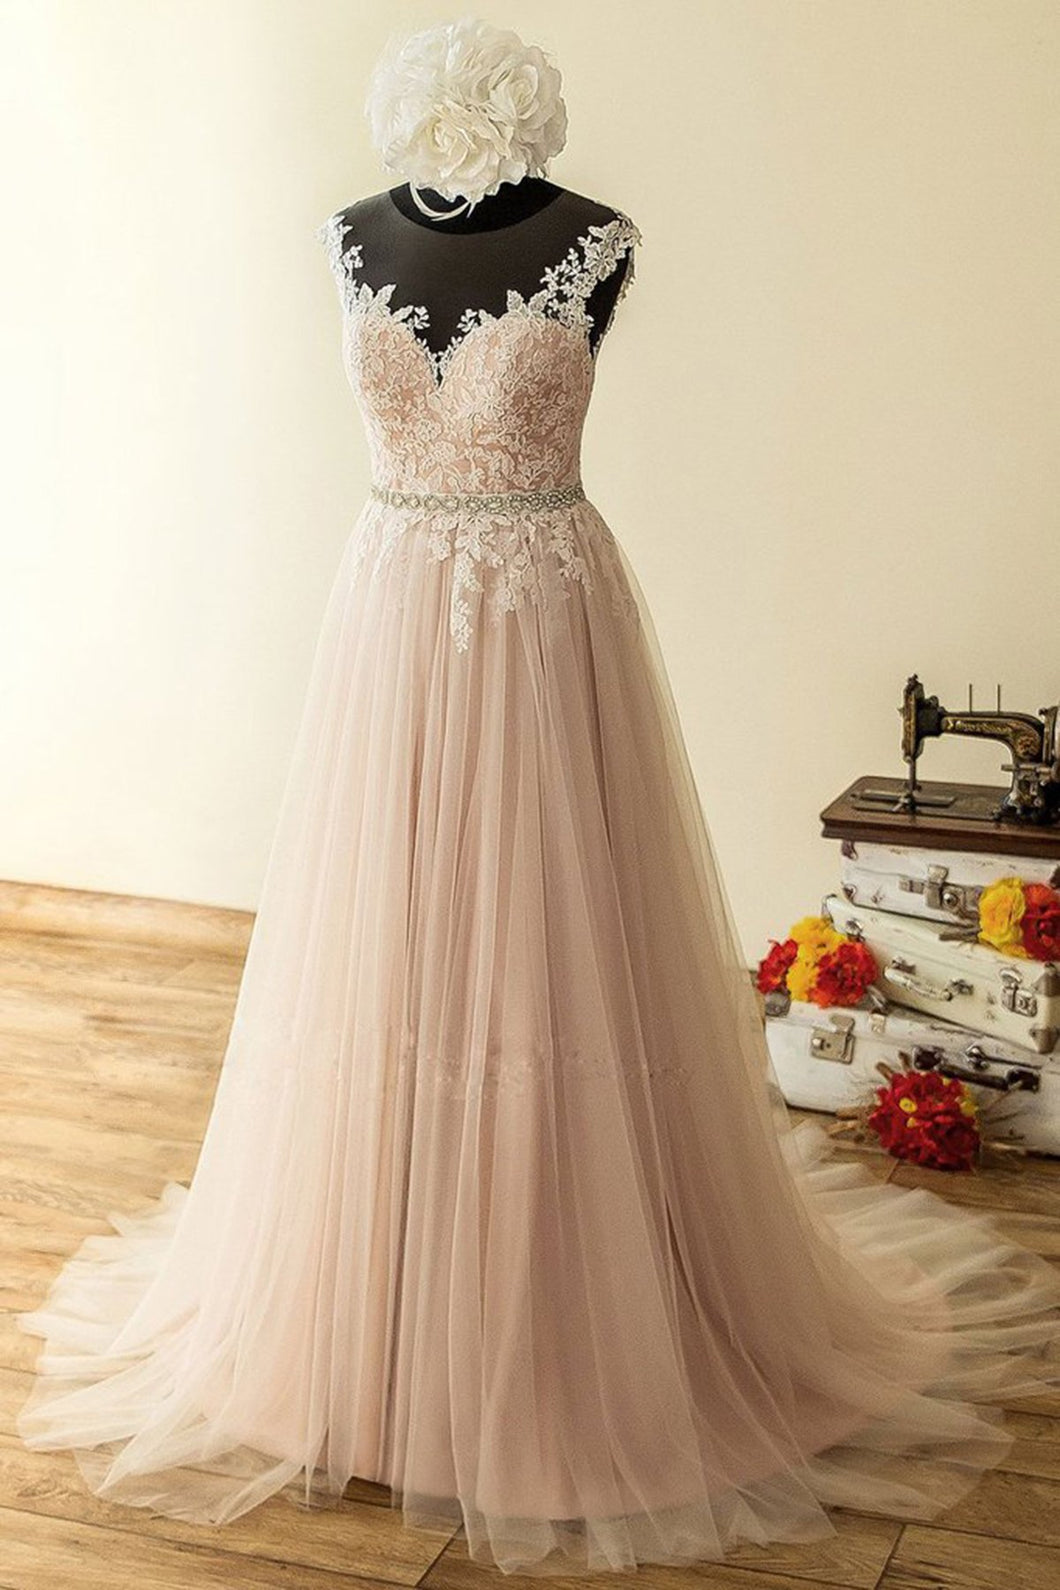 2019 Prom Dresses | Blush Pink Tulle Long Lace Beaded A Line Halter Prom Dress, Evening Dress